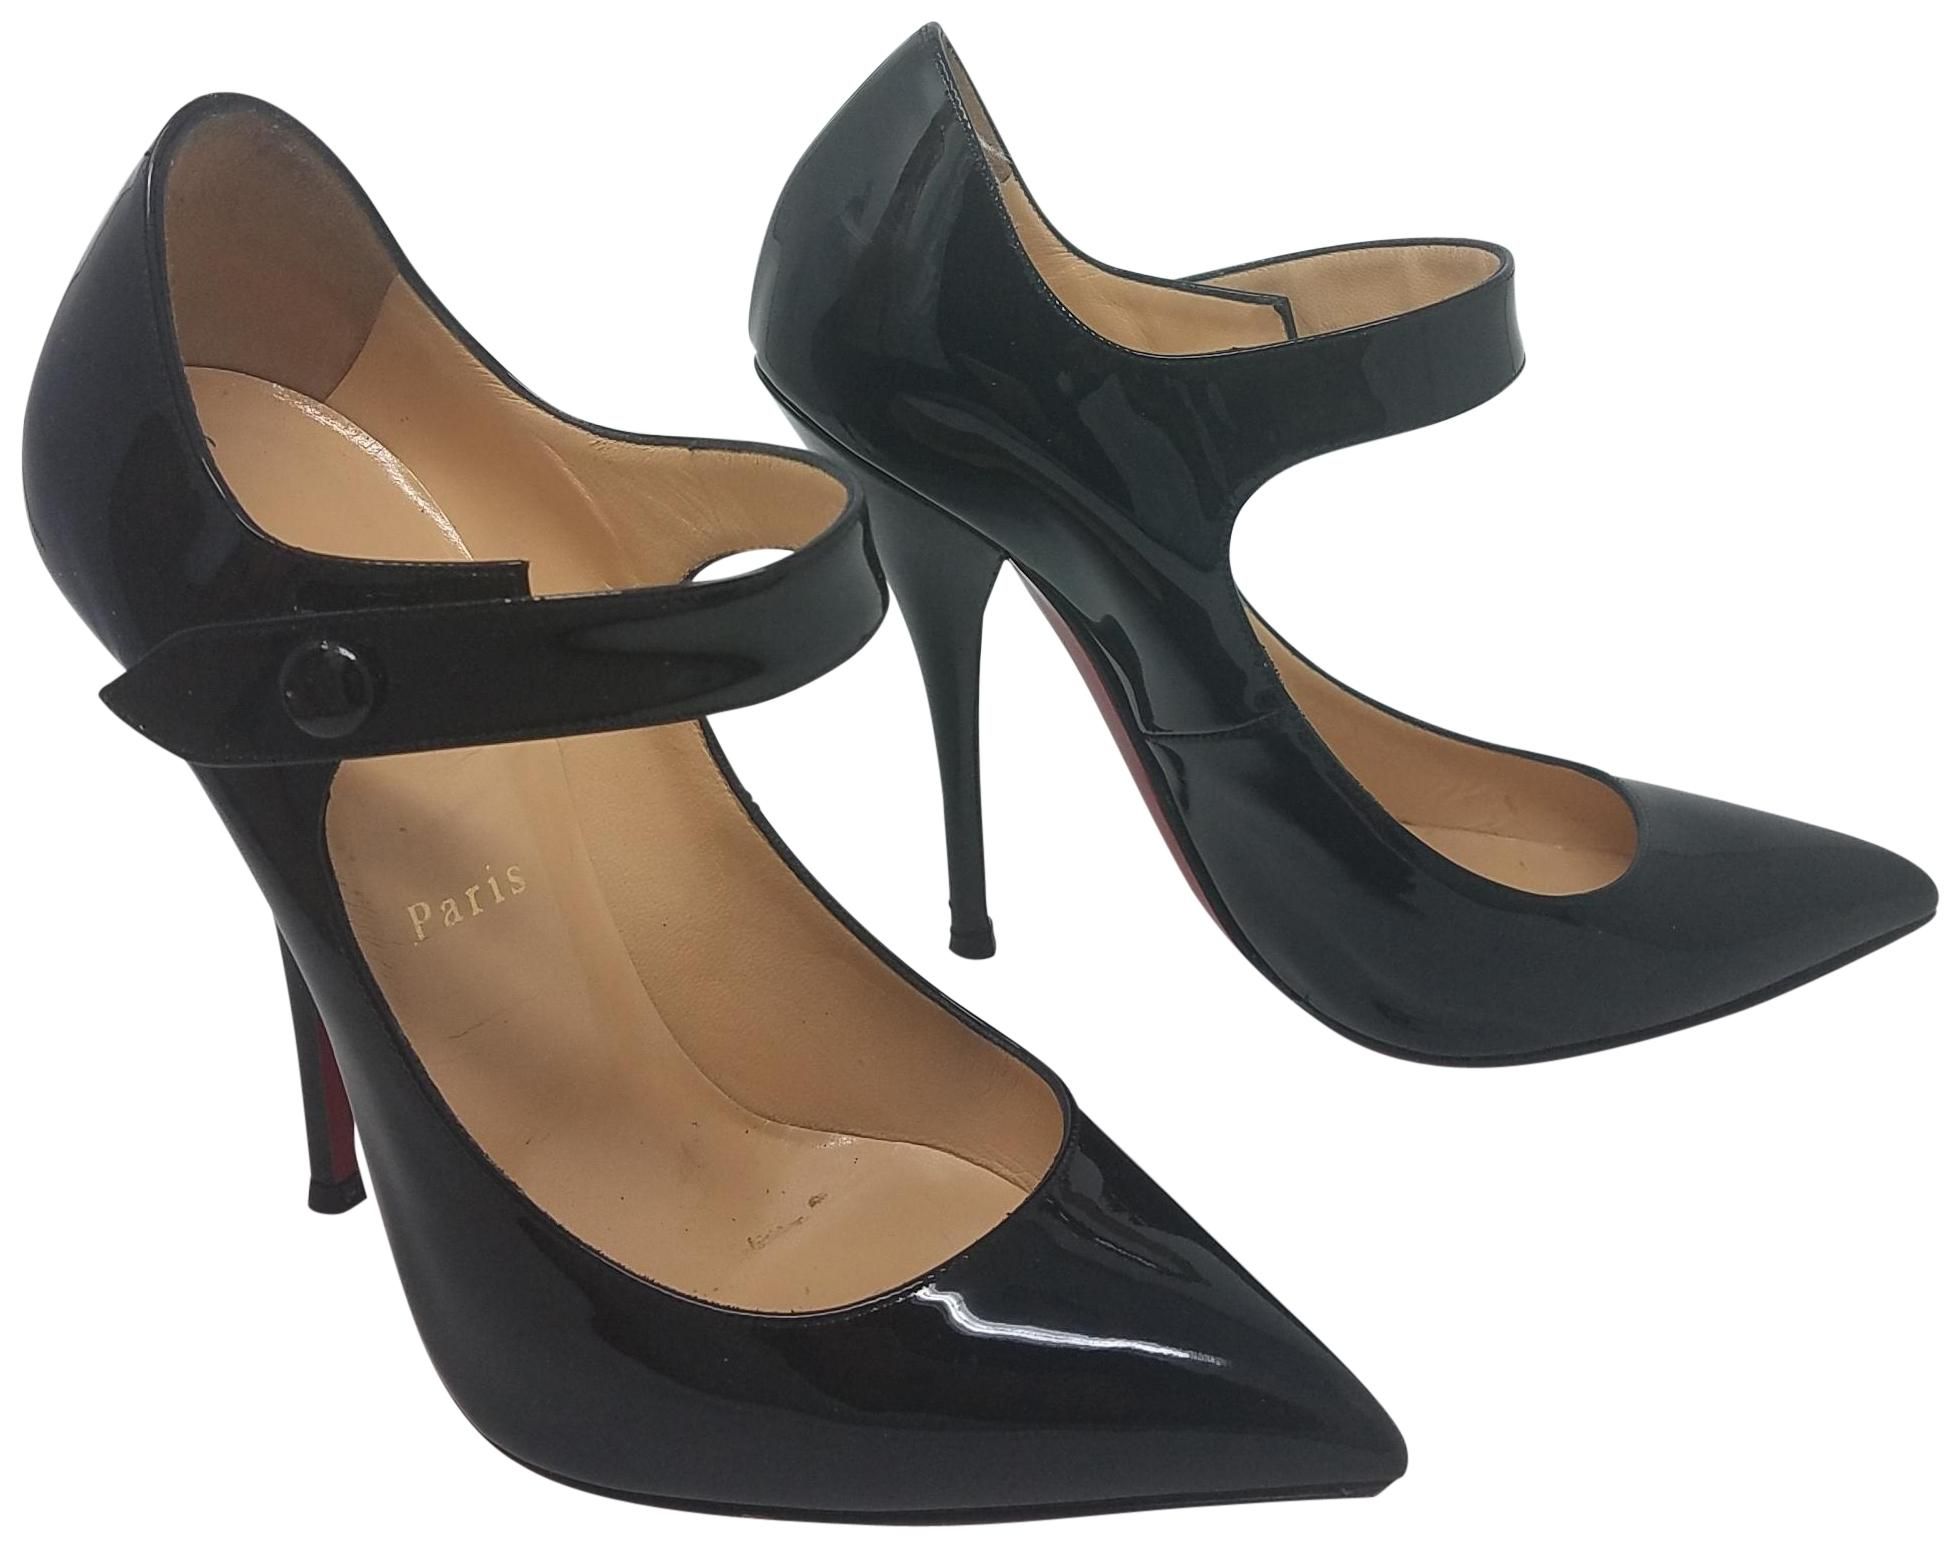 Christian Louboutin Black Patent Leather Neo Pensee Pumps Size EU 37 (Approx. US 7) Regular (M, B)